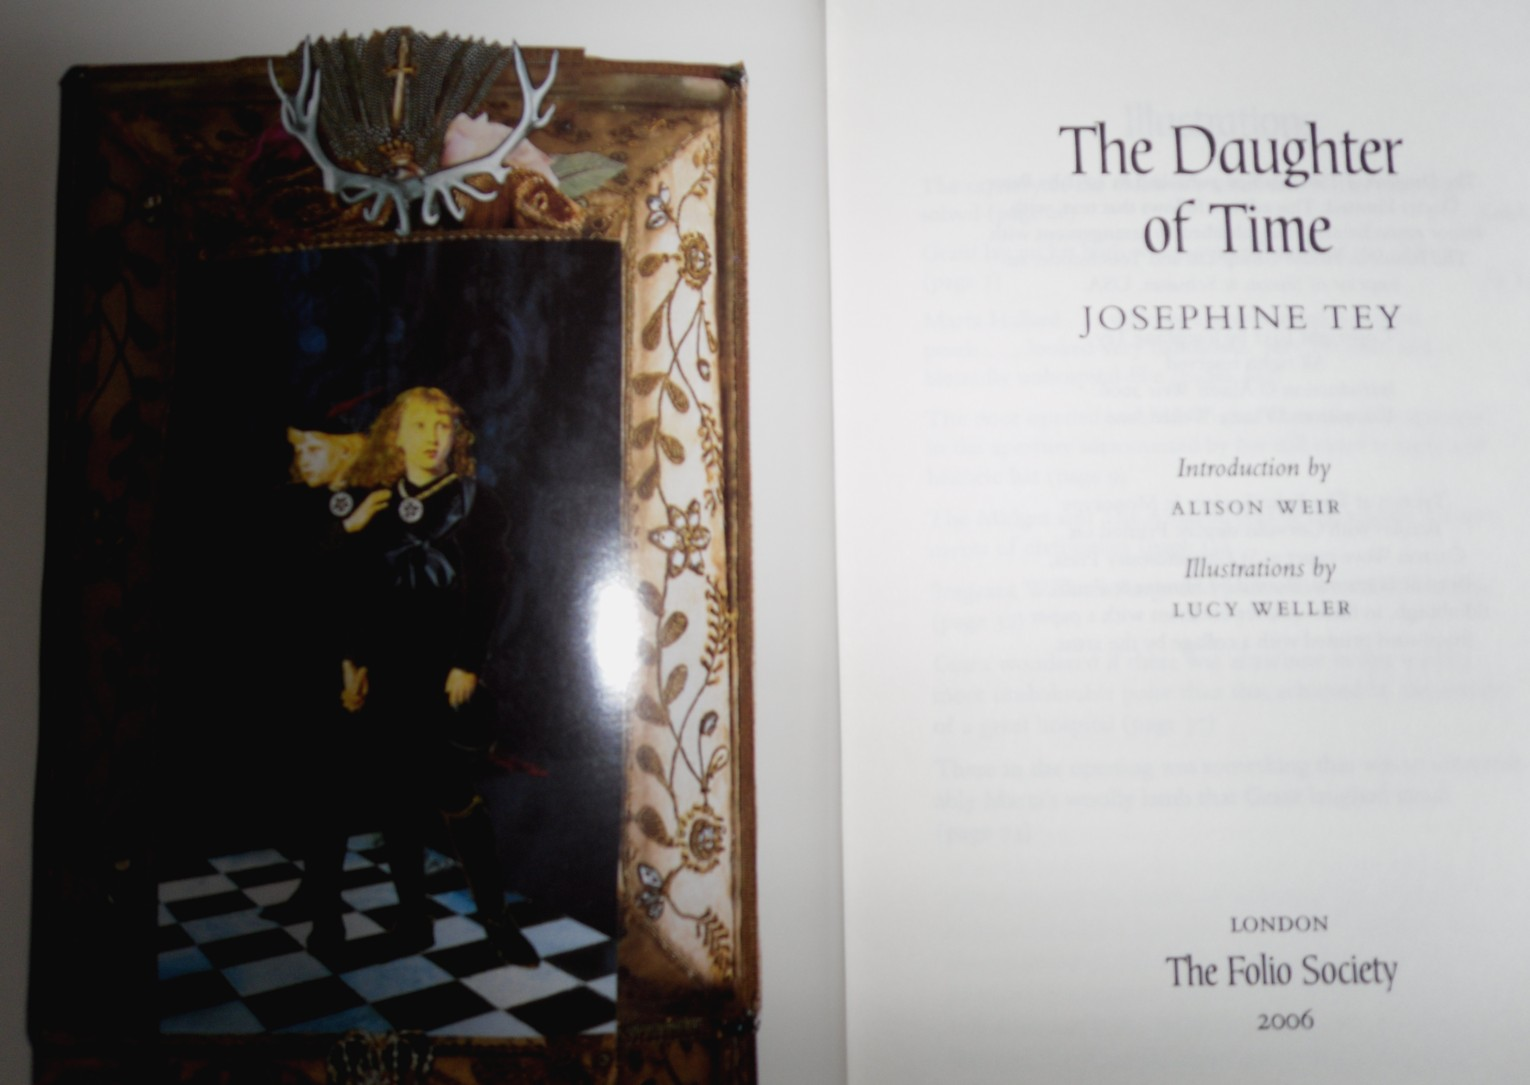 Of Course, The Daughter Of Time Is Fiction It Was Published In 1952 &  Research Has Uncovered A Lot Morermation About The Period Since Then